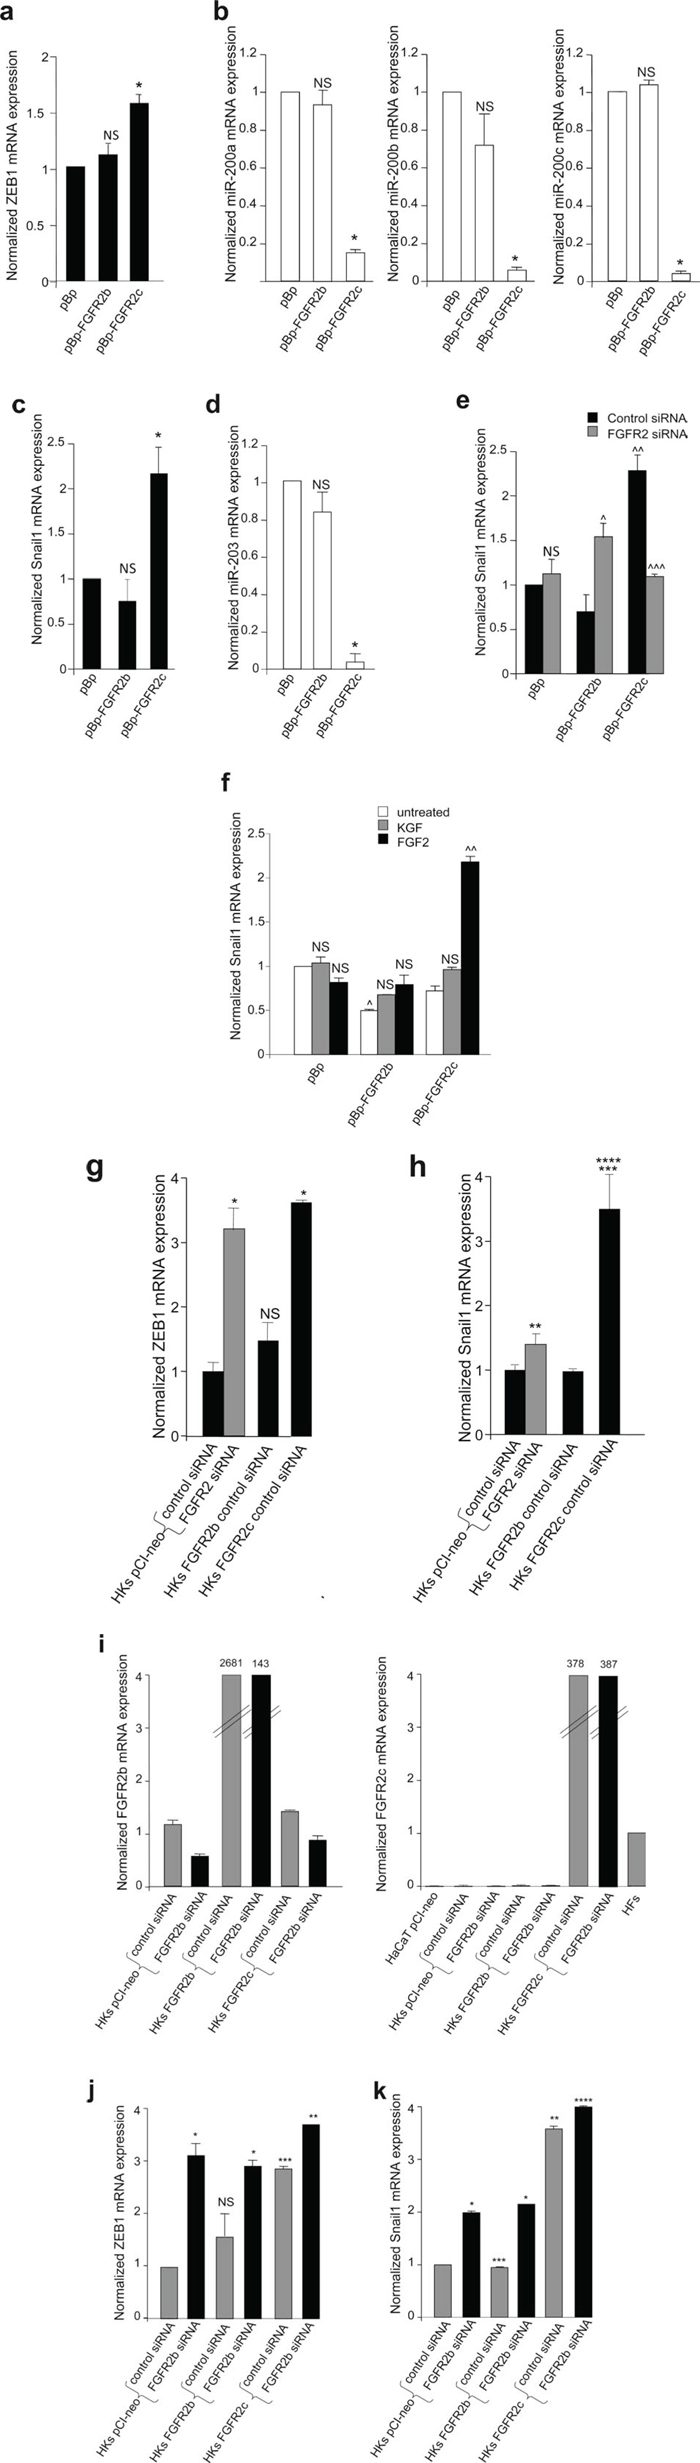 FGFR2c expression and signaling unbalance the transcription factors involved in EMT and their related miRs.